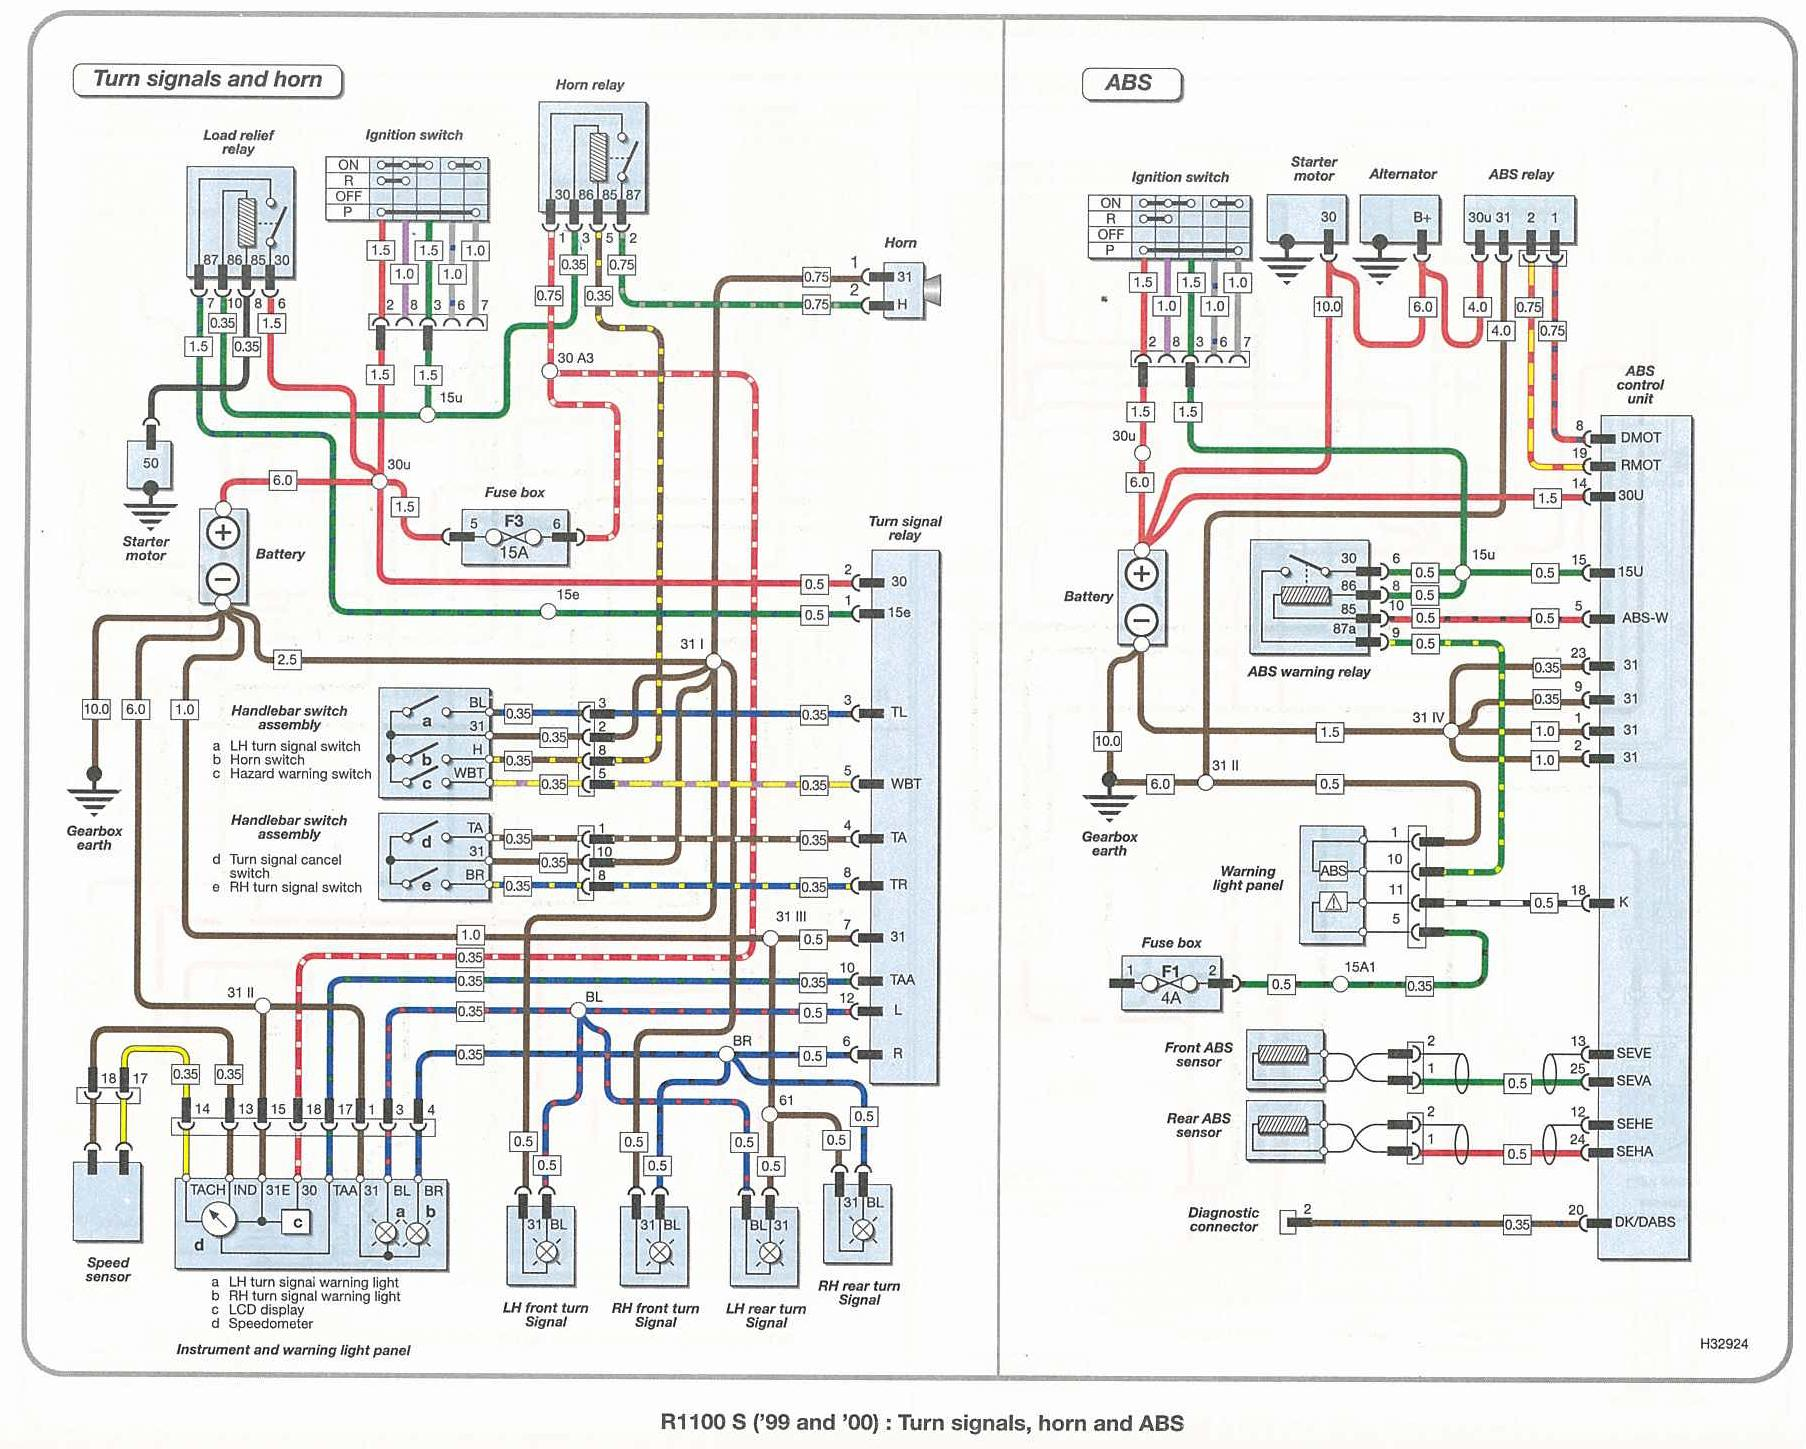 wiring03 bmw r1100s wiring diagrams bmw r1100r wiring diagram at gsmportal.co